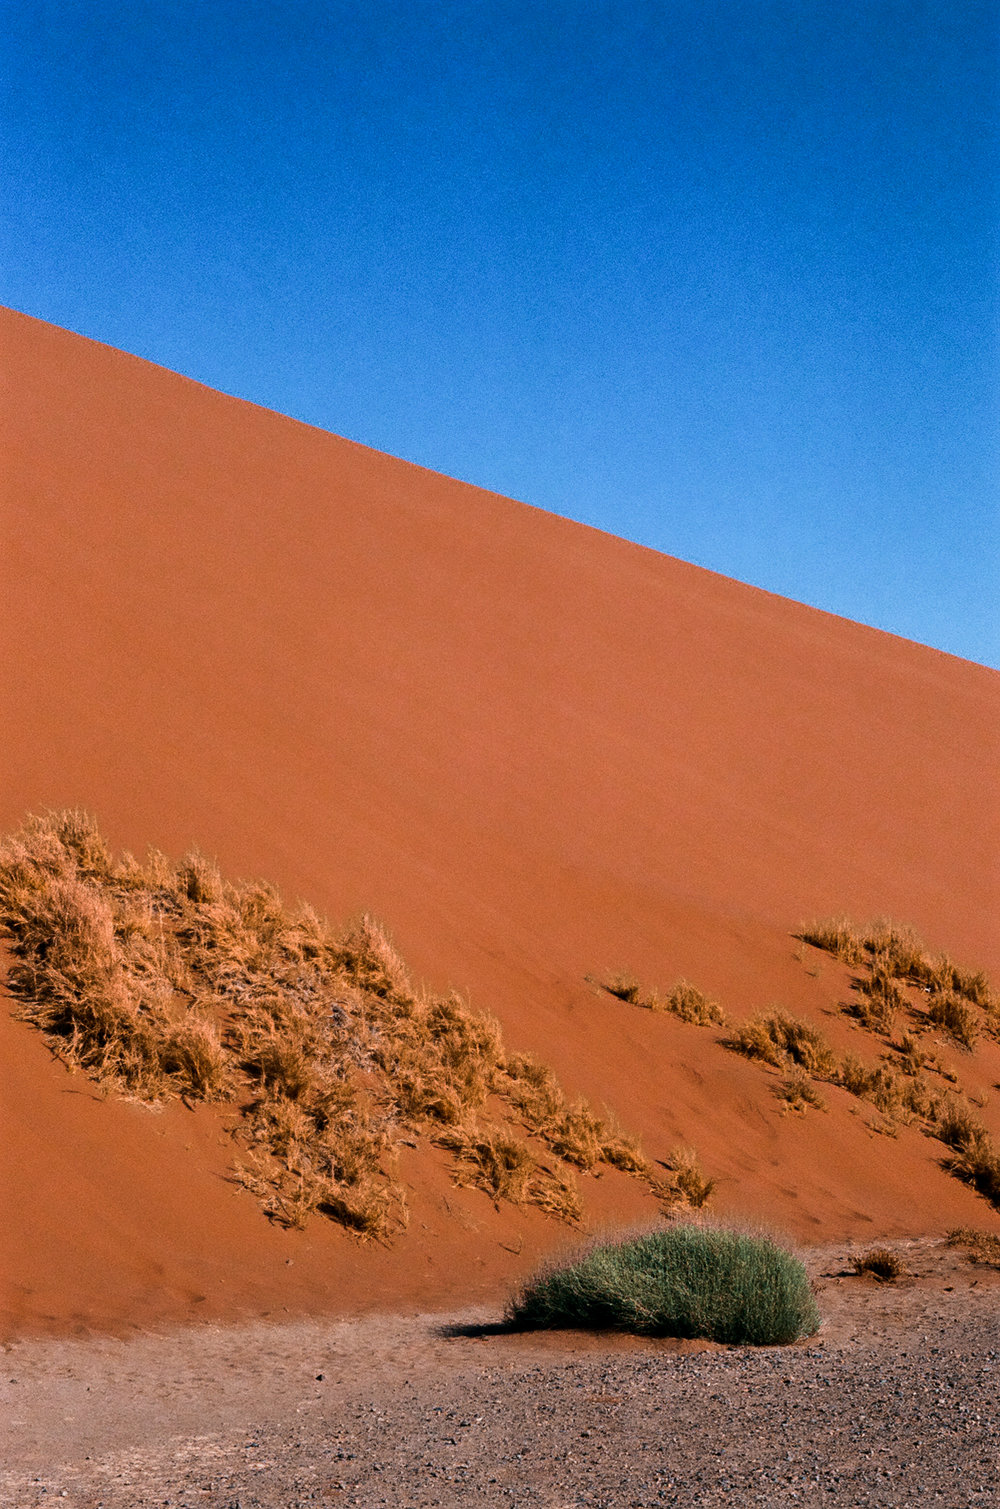 35mm Namibia 2018 _ Edited -67.jpg